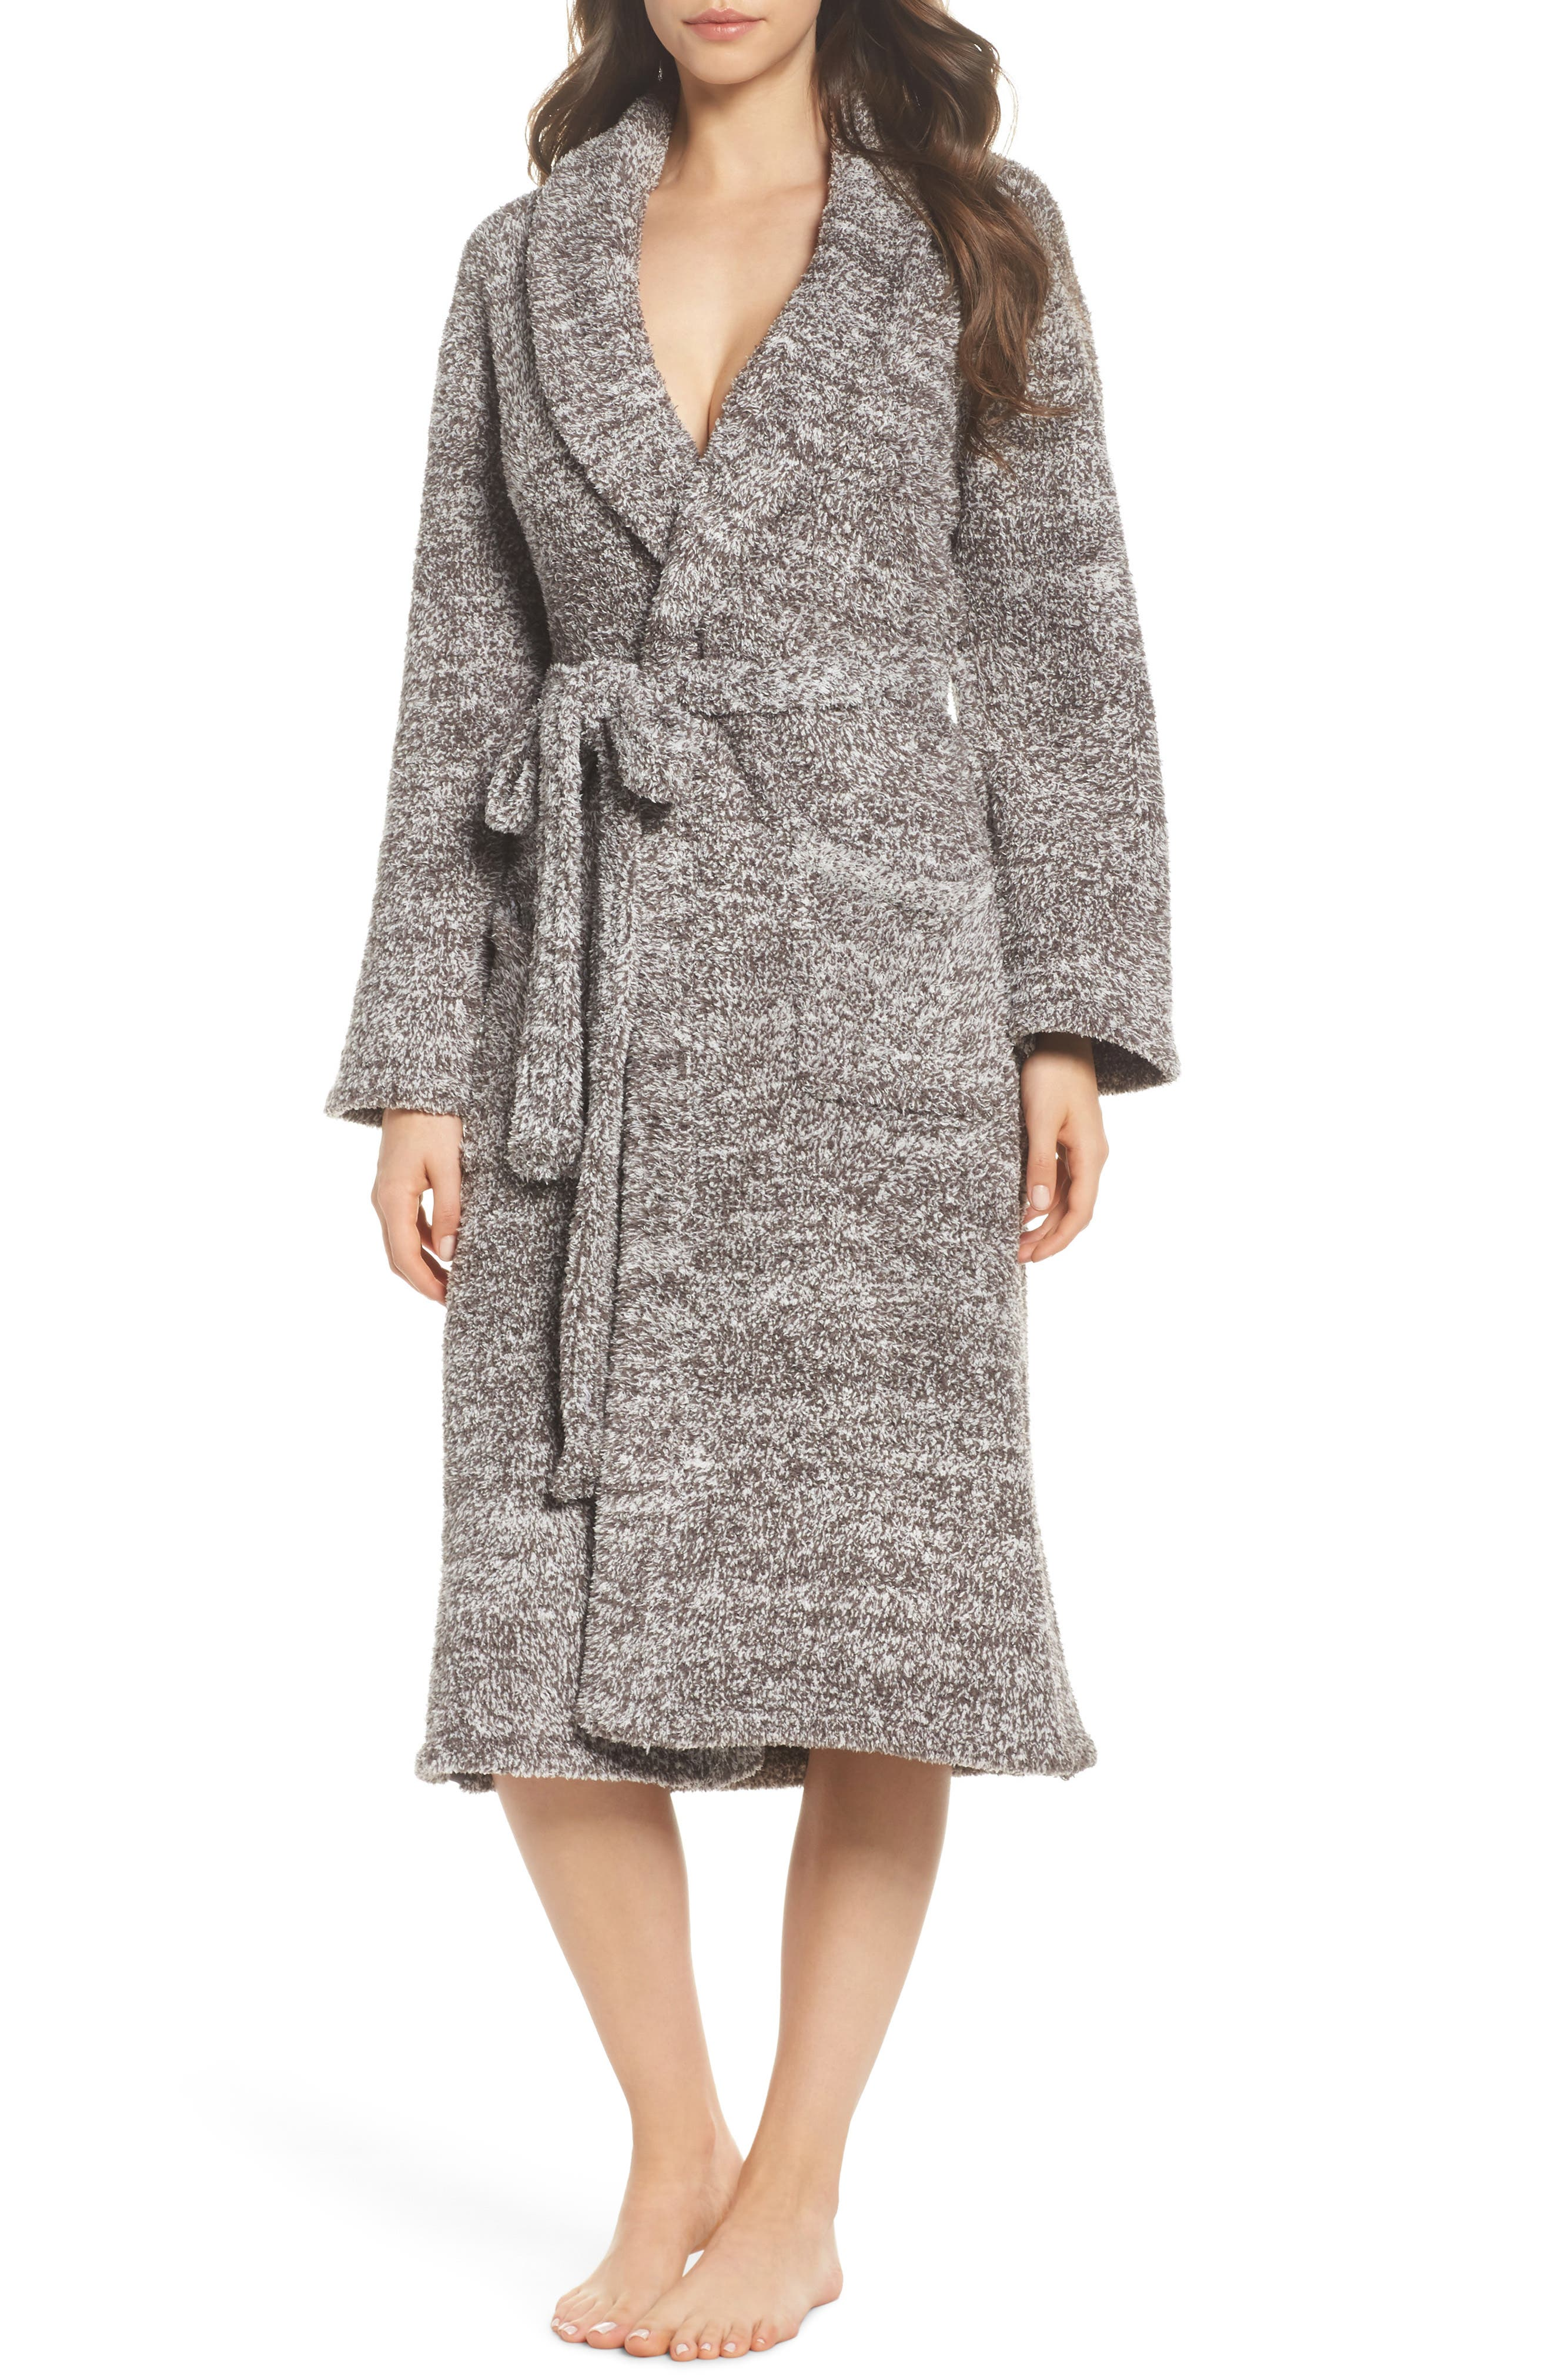 CozyChic<sup>®</sup> Robe,                             Main thumbnail 1, color,                             COCOA/ PEARL